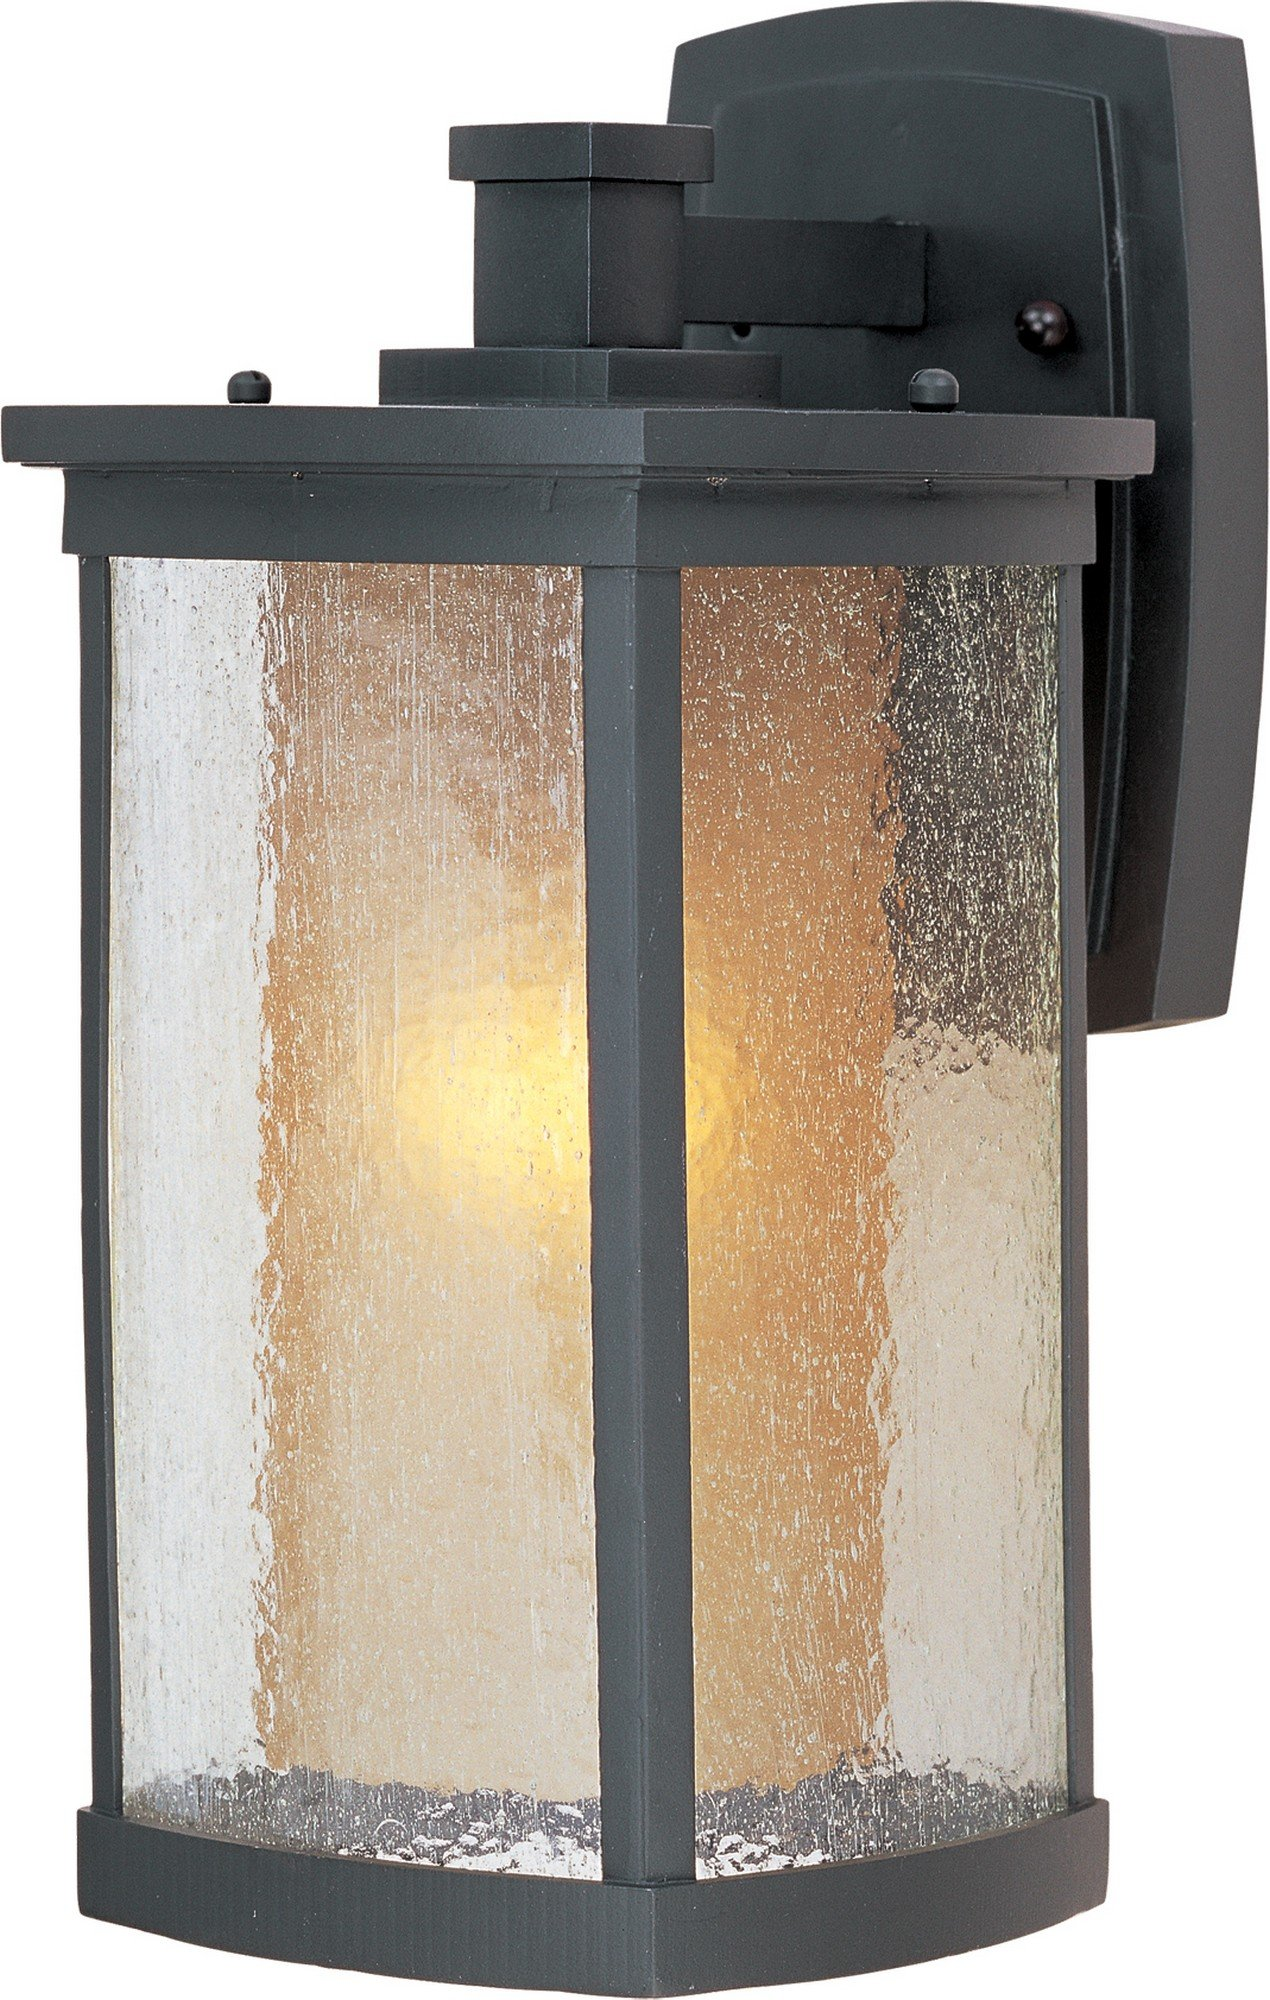 Maxim 3153CDWSBZ Bungalow 1-Light Wall Lantern, Bronze Finish, Seedy/Wilshire Glass, MB Incandescent Incandescent Bulb , 60W Max., Dry Safety Rating, Standard Dimmable, Glass Shade Material, Rated Lumens